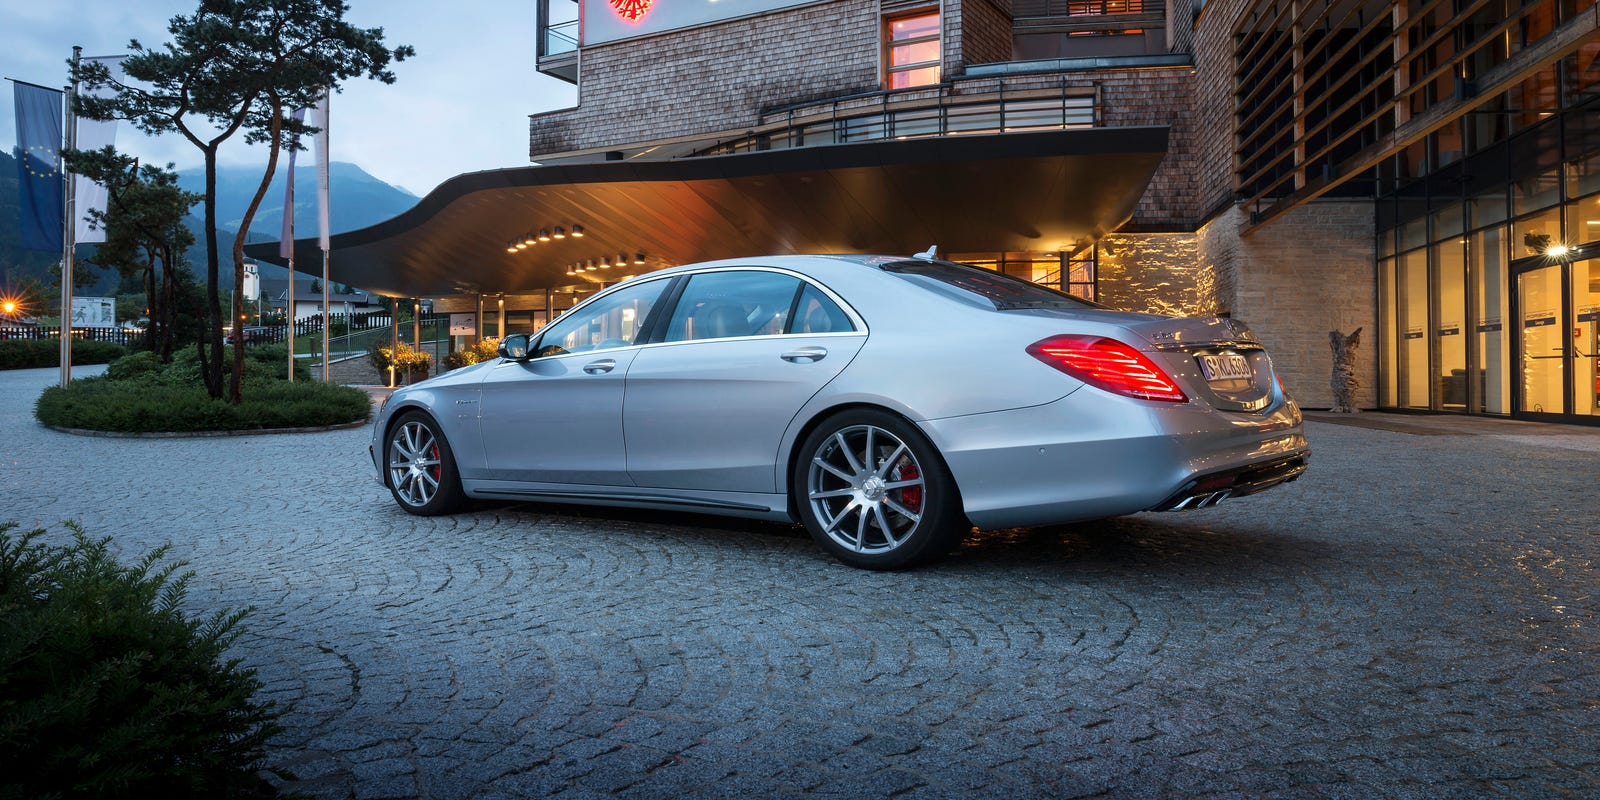 Auto review: 2014 Mercedes S63 AMG could be world's best car